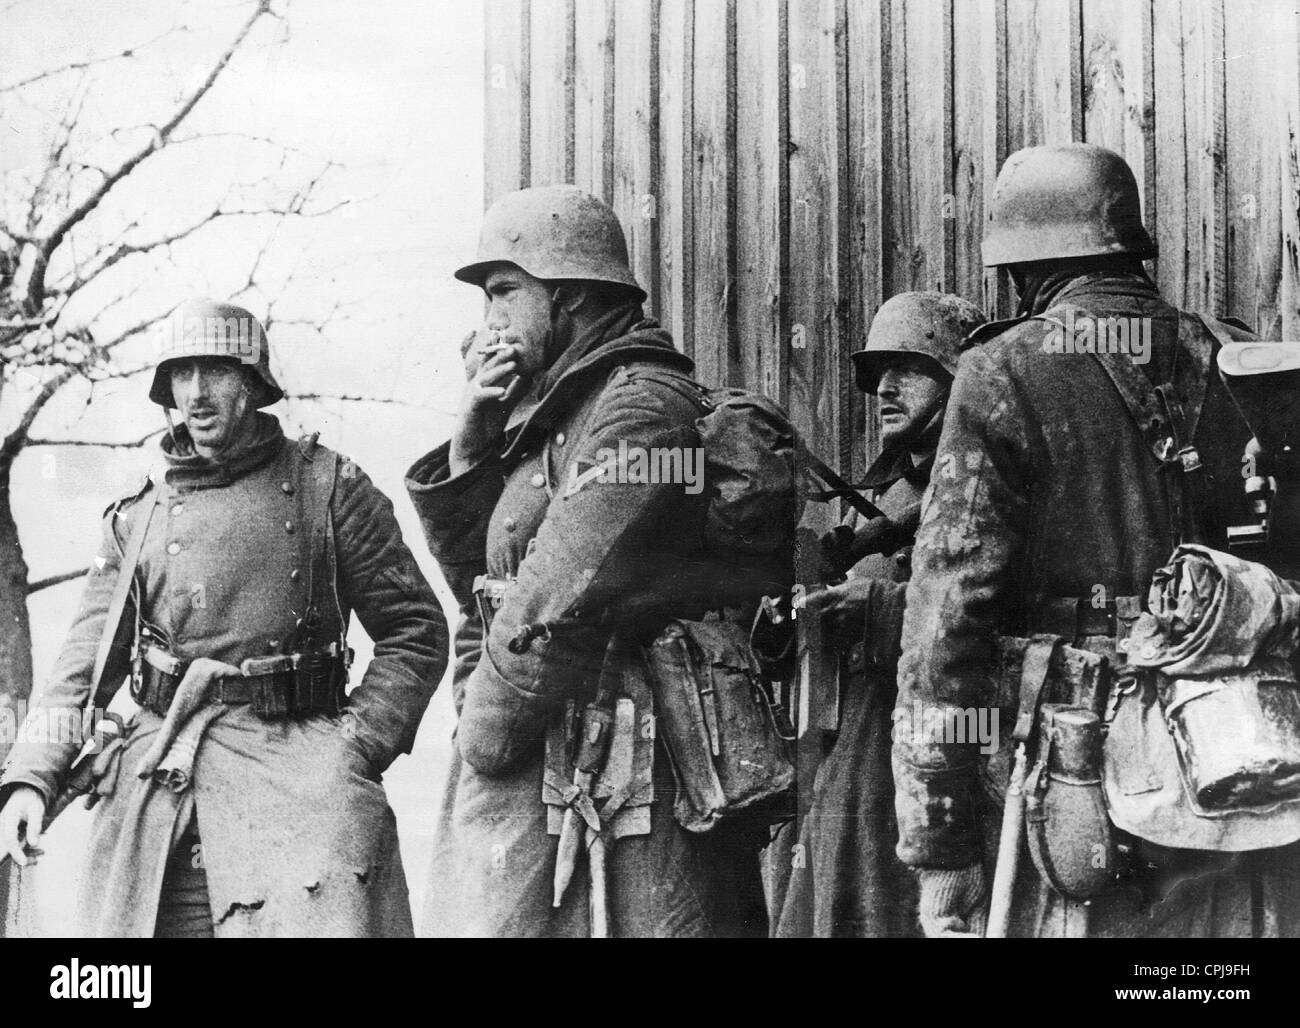 German soldiers in East Prussia, 1945 Stock Photo: 48345797 - Alamy